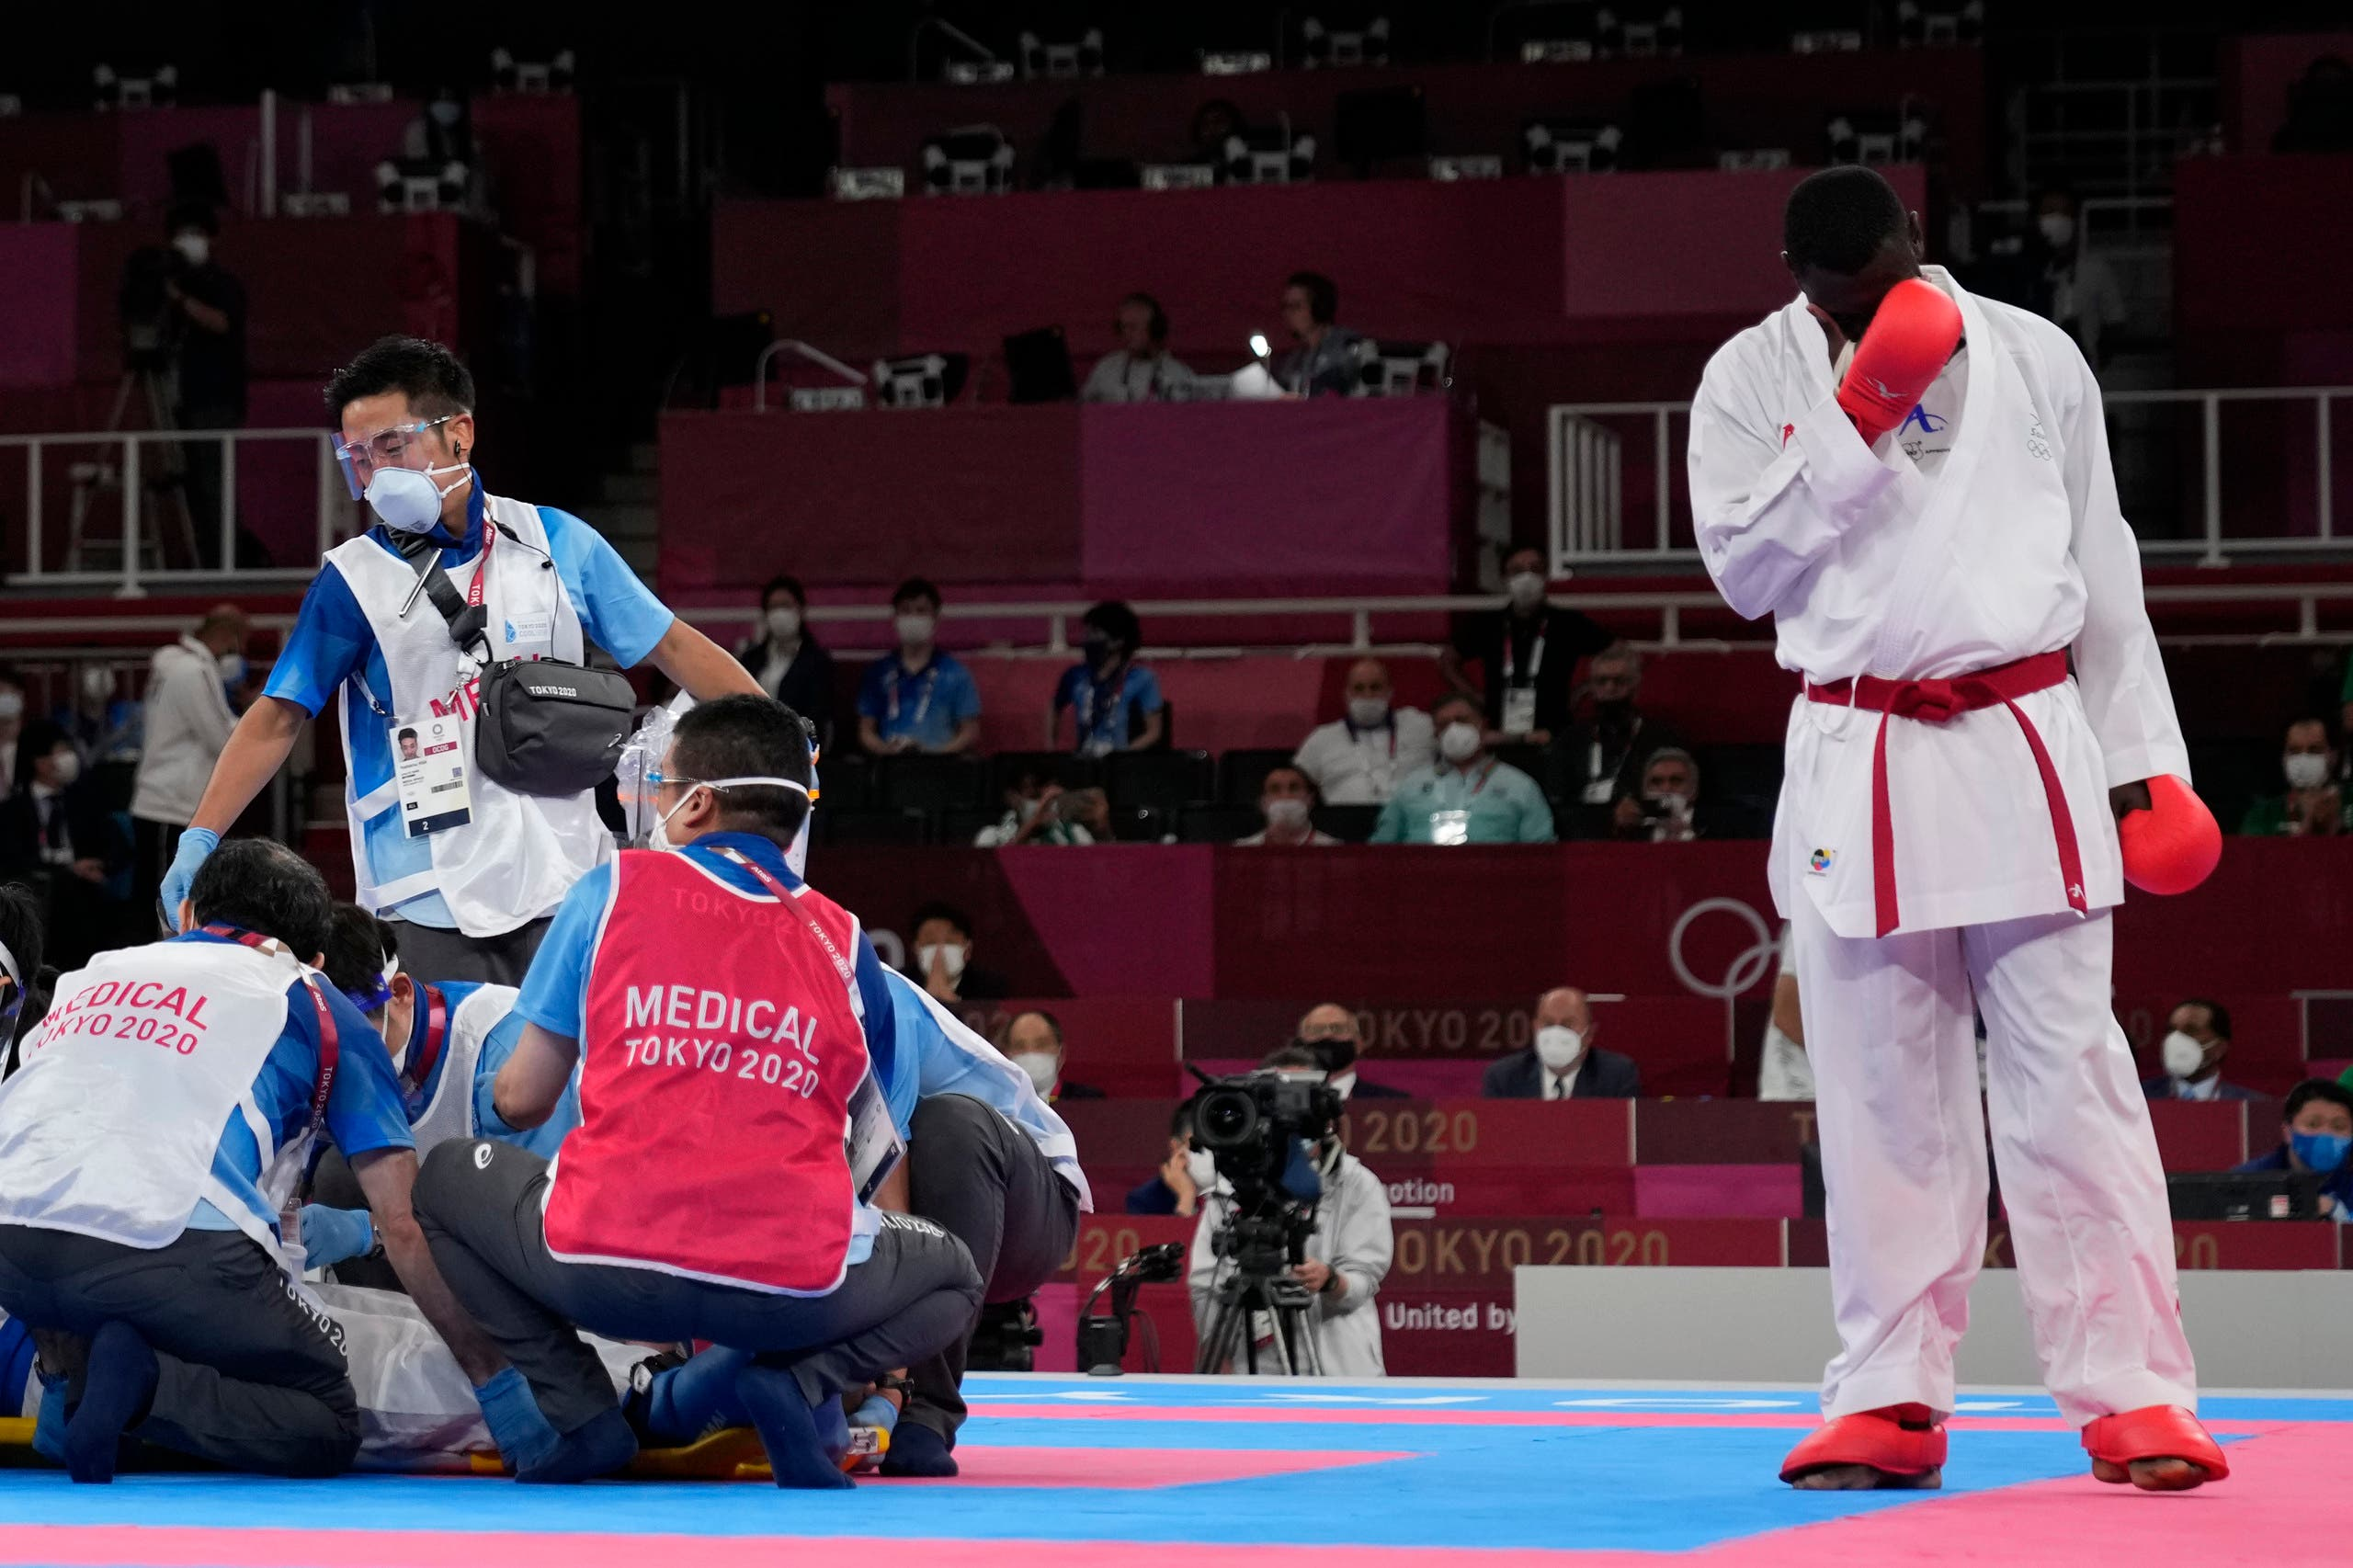 Tarek Hamedi of Saudi Arabia, right, reacts as medical personnel attend to Sajad Ganjzadeh of Iran after he was injured in their men's kumite +75kg gold medal bout for karate at the 2020 Summer Olympics, Saturday, Aug. 7, 2021, in Tokyo, Japan. (AP)